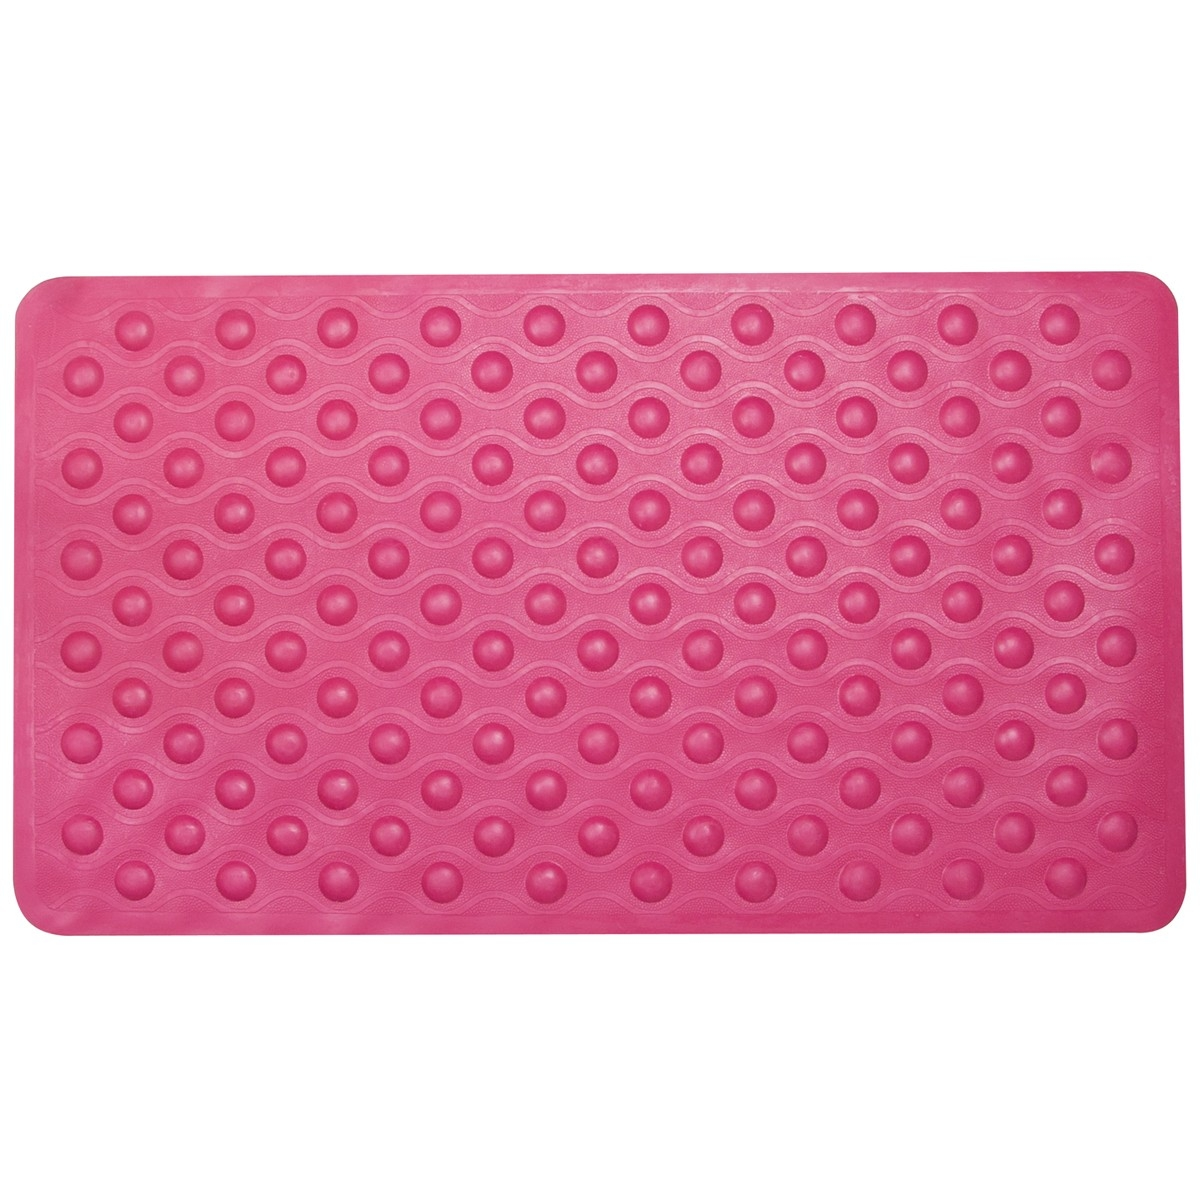 Bath Mats Rubber